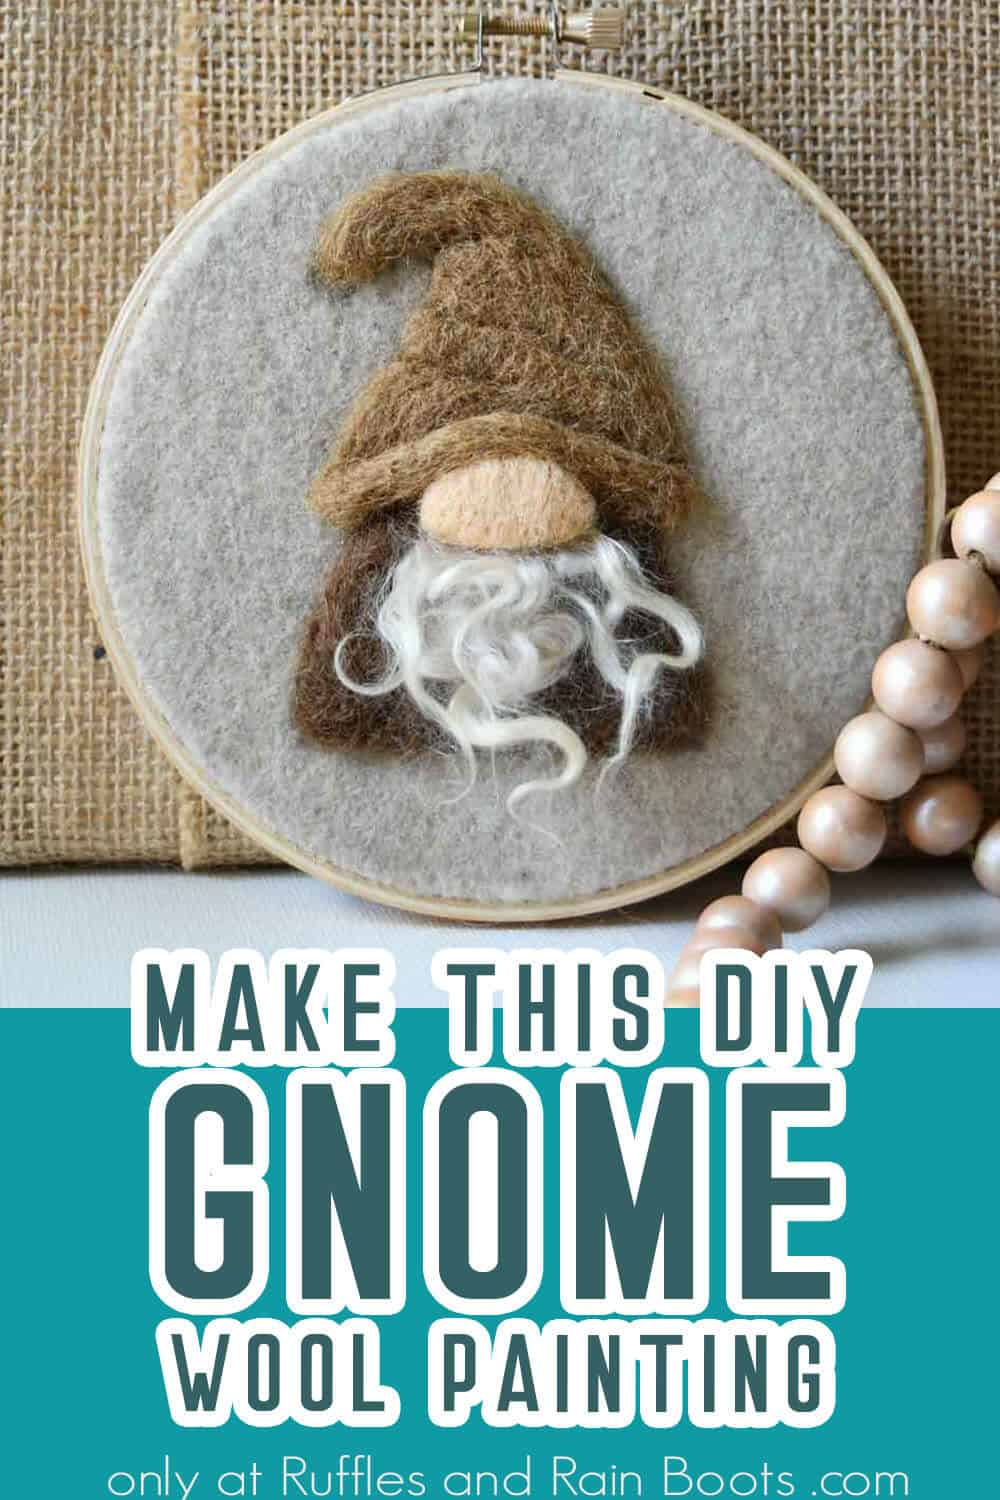 diy gnome wool canvas painting with text which reads make this diy gnome wool painting